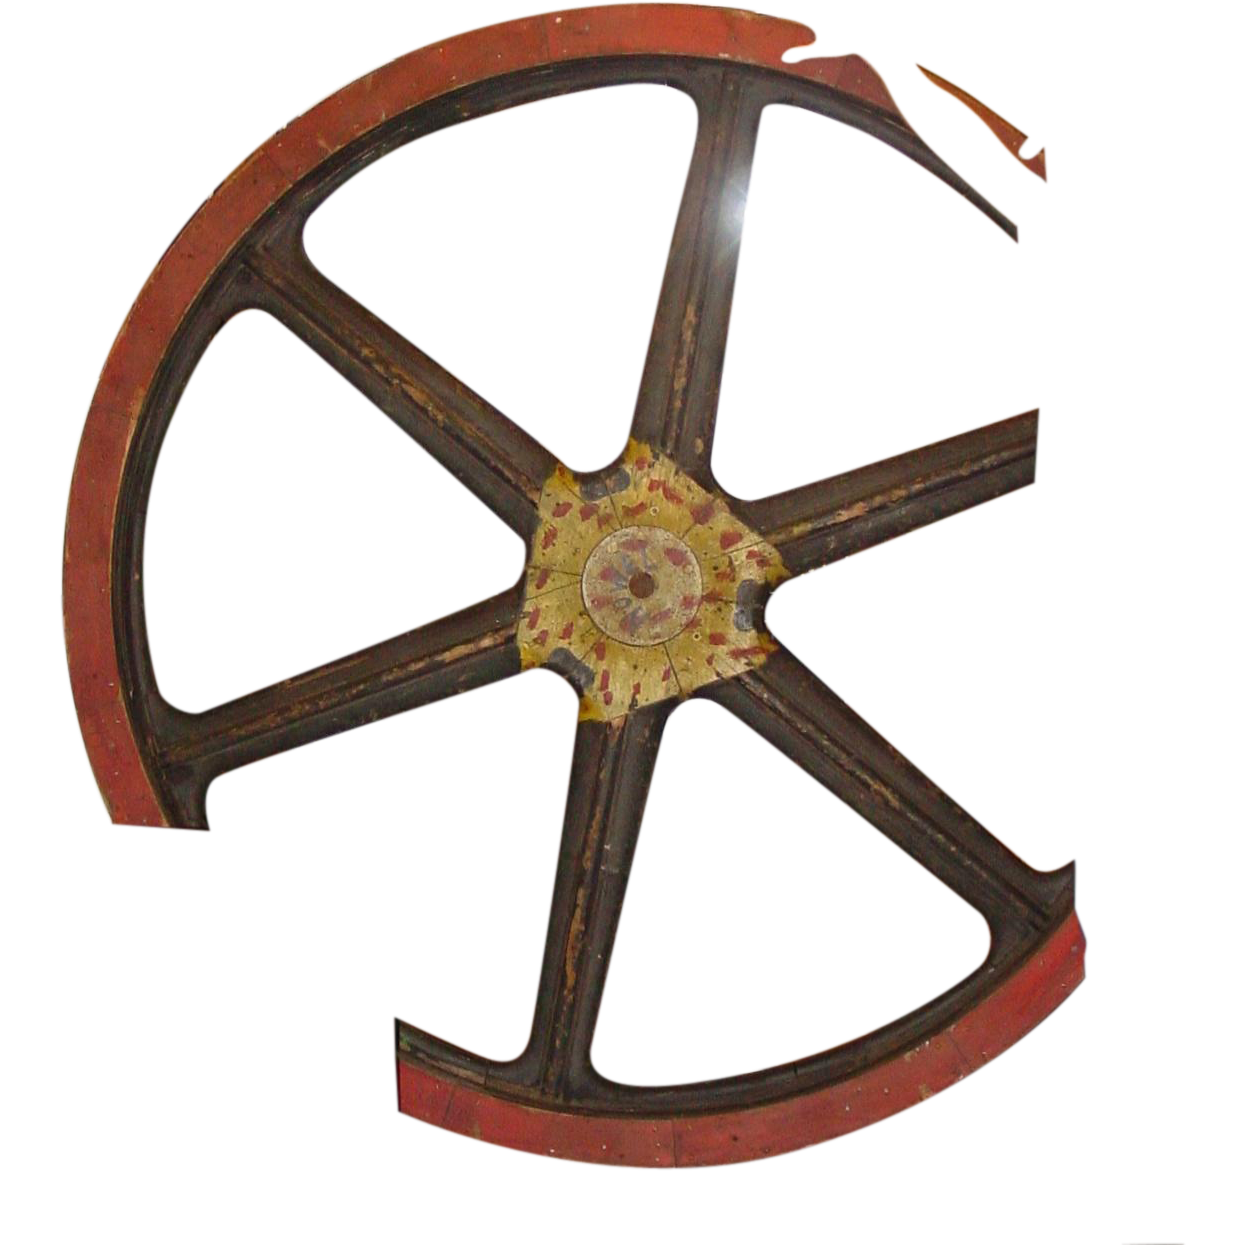 77 inch diameter wooden industrial factory wheel cog